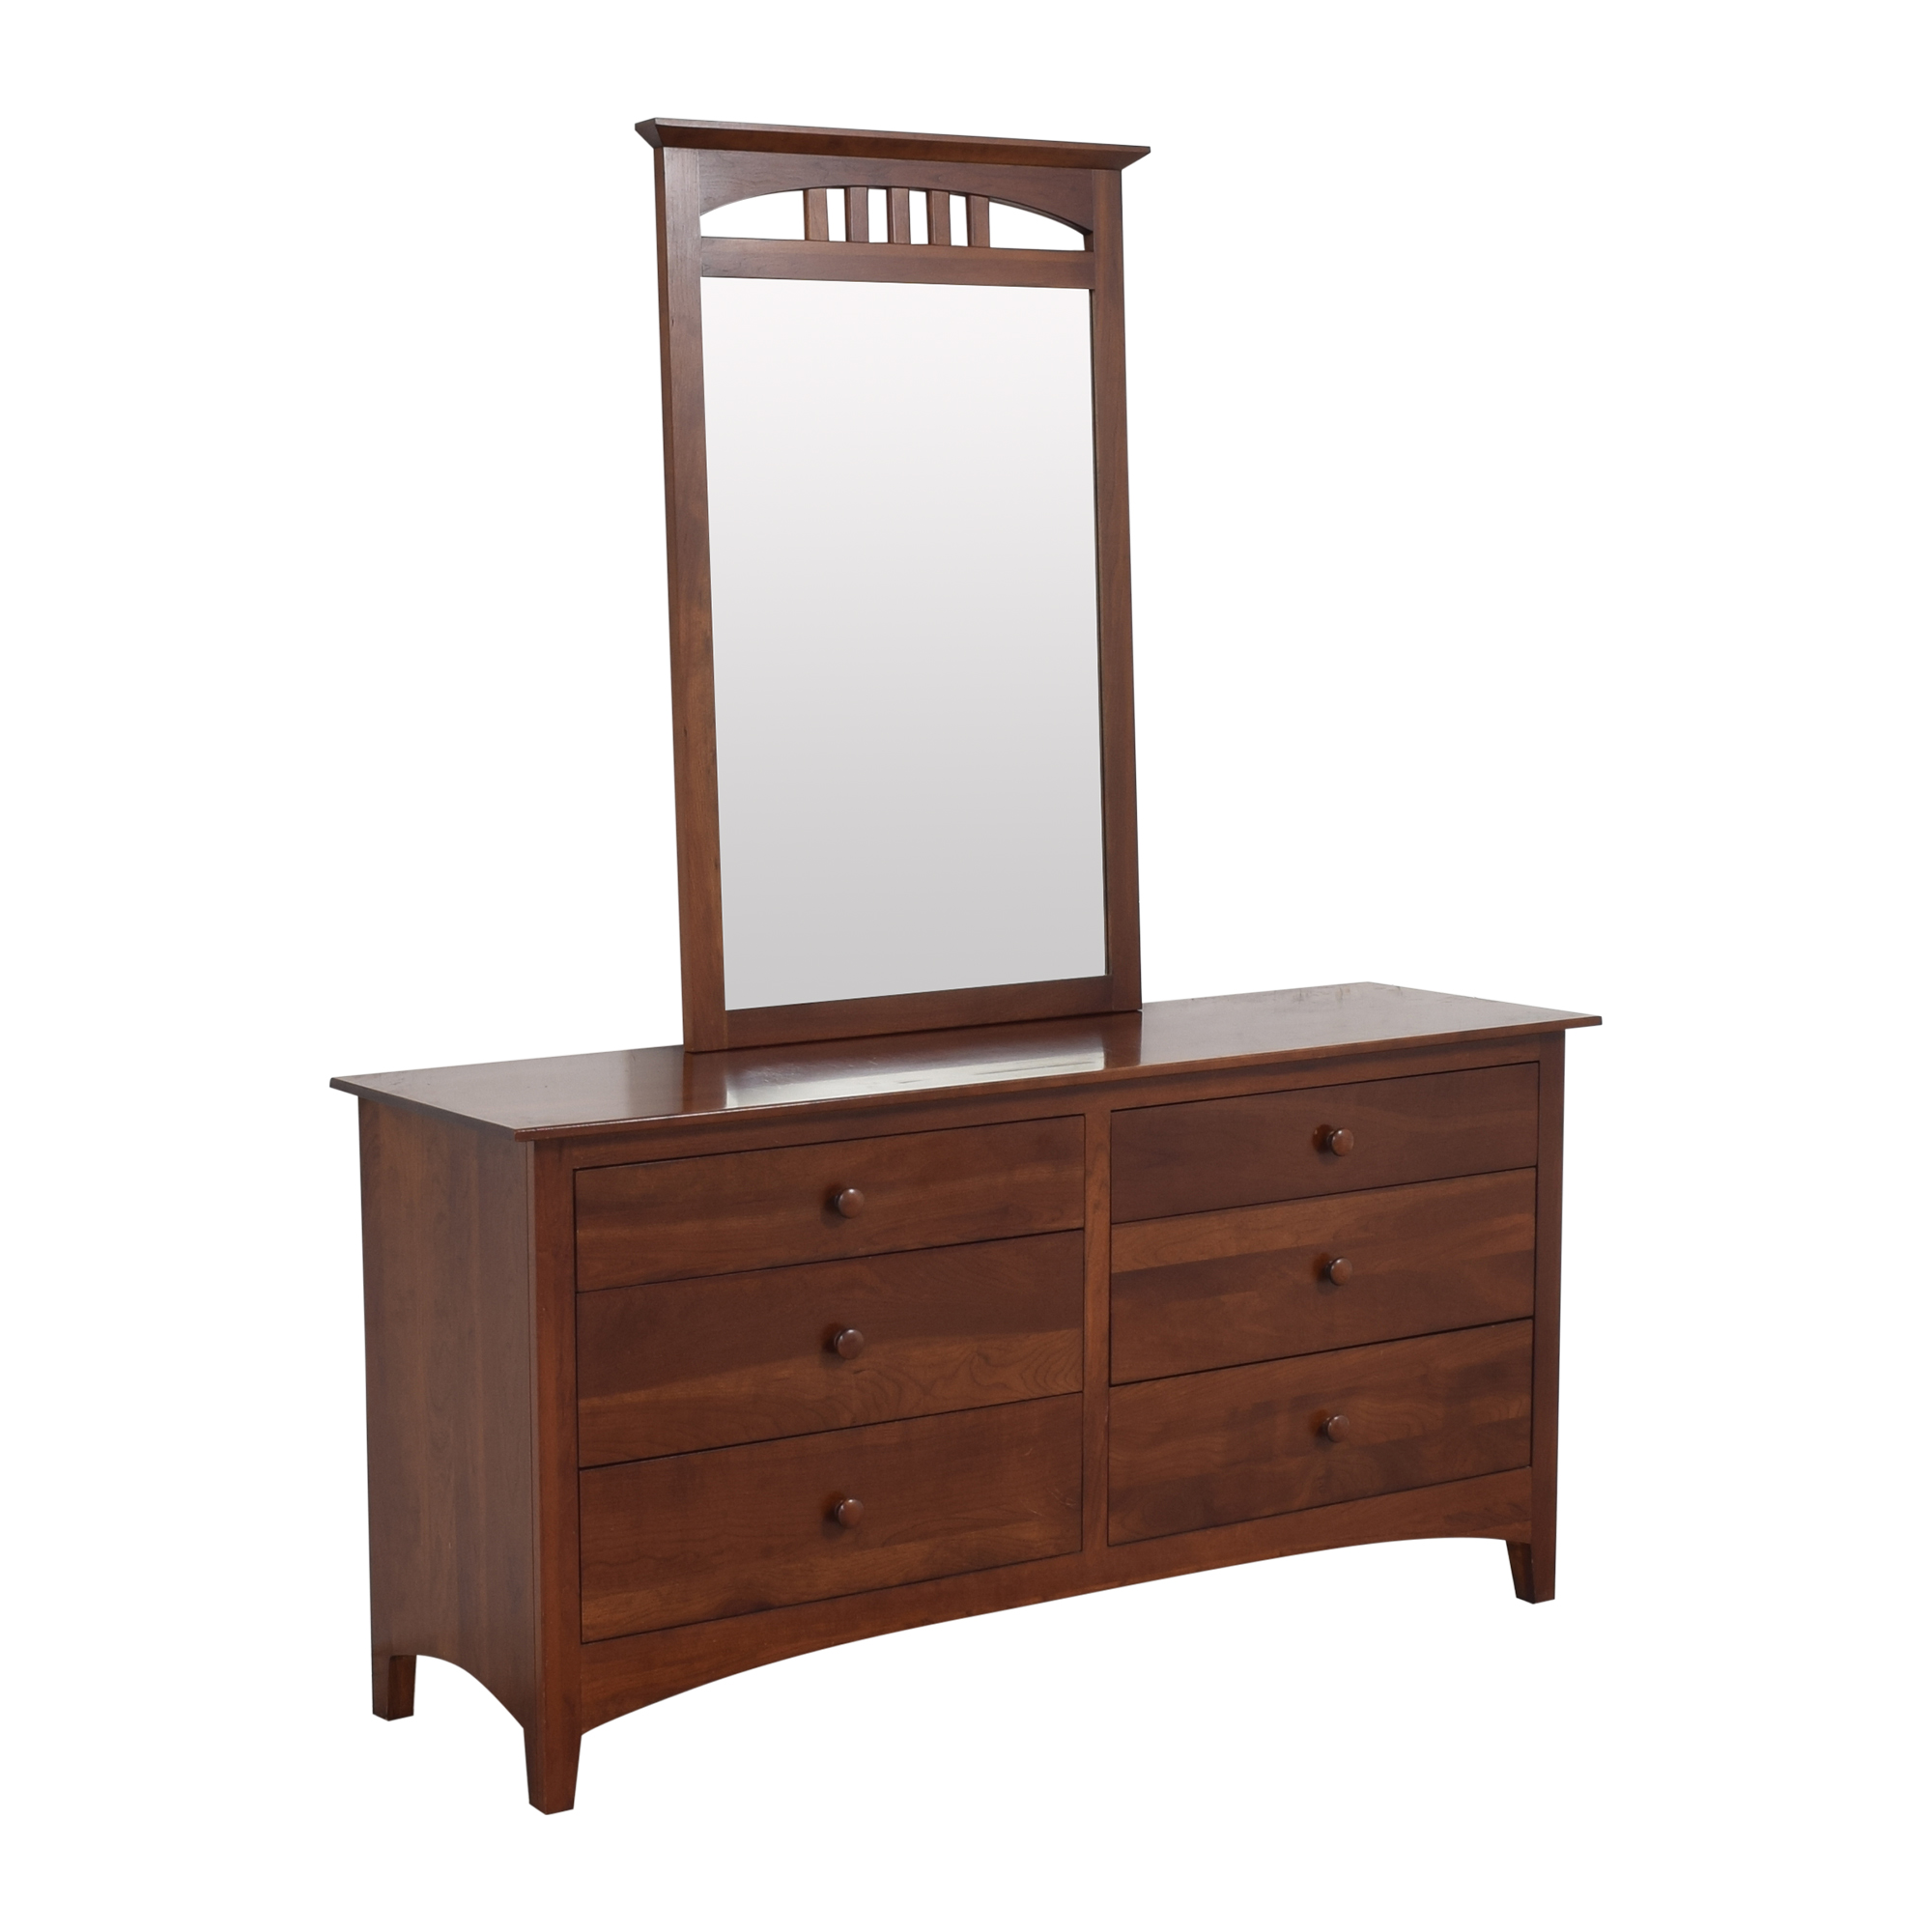 Ethan Allen Ethan Allen American Impressions Dresser with Mirror for sale